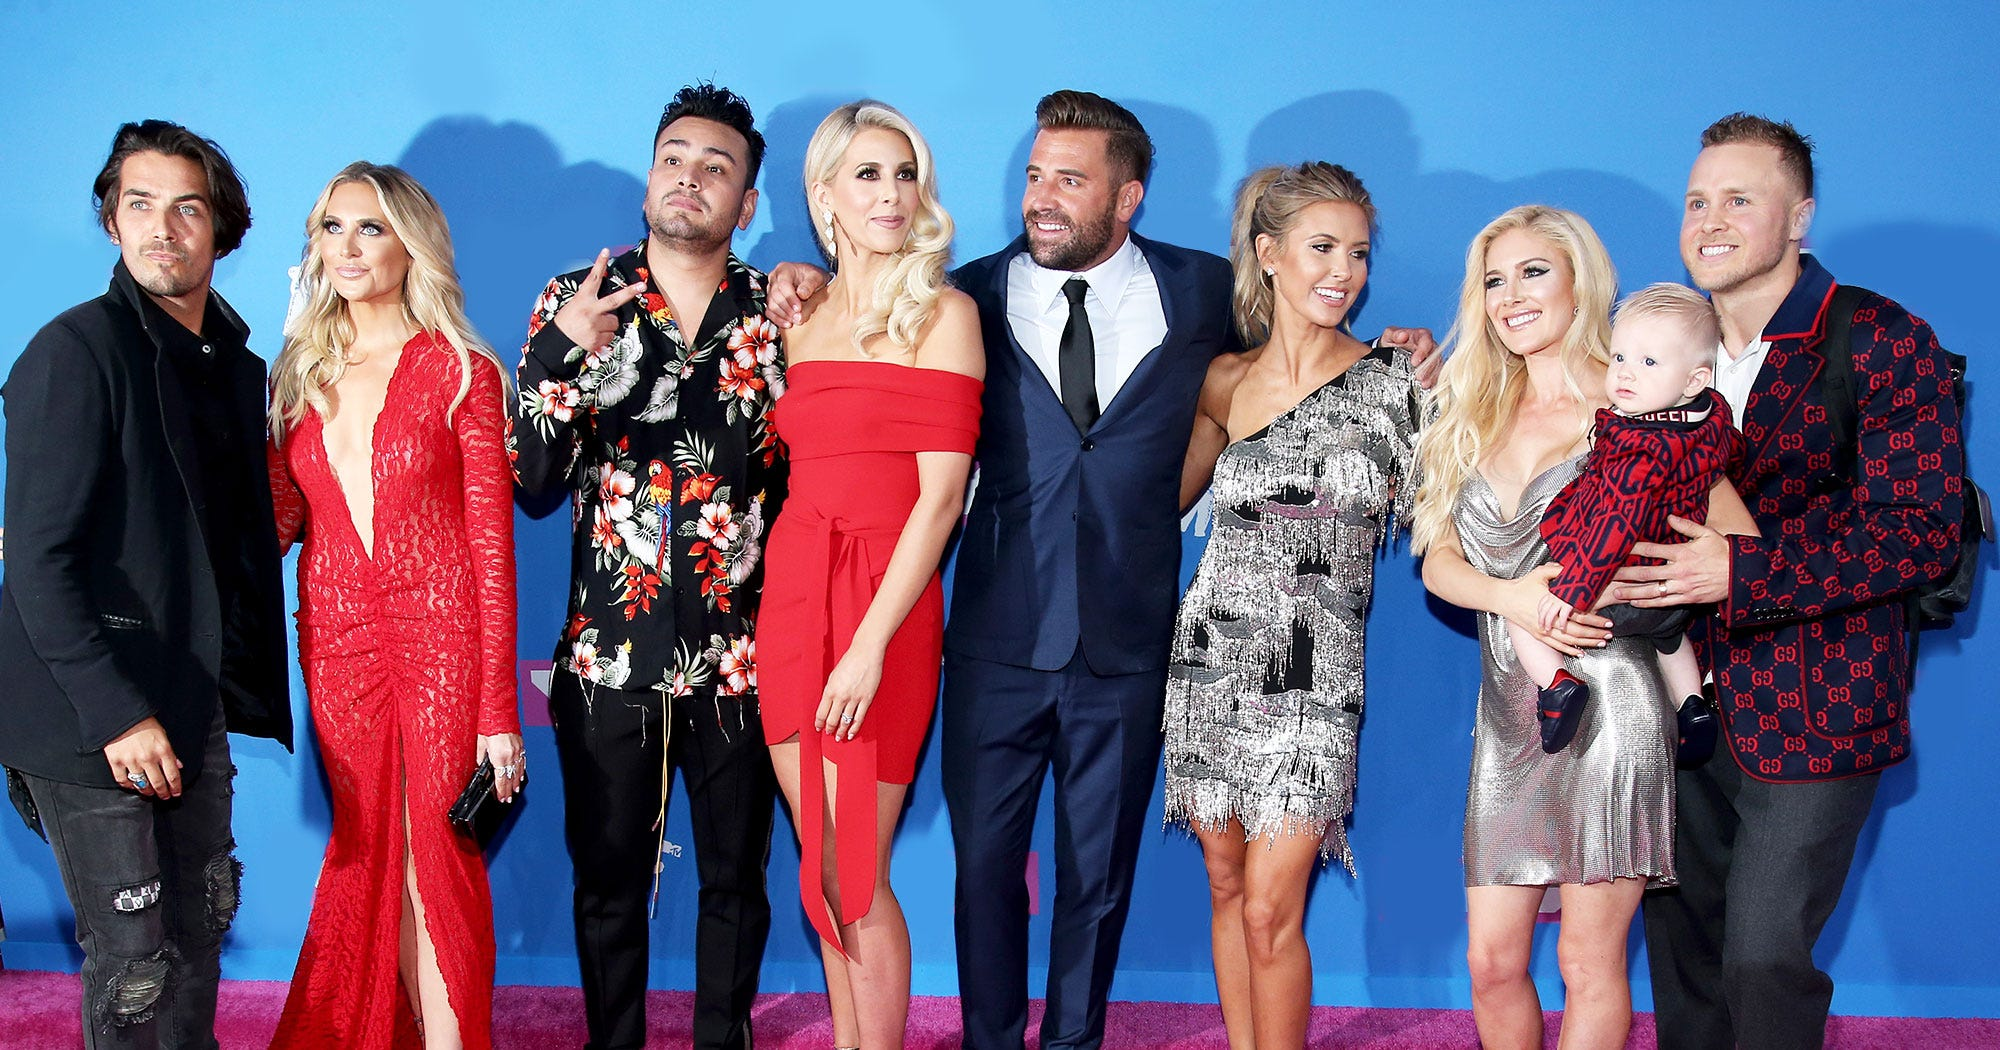 Laguna Beach & The Hills Producers FINALLY Reveal What